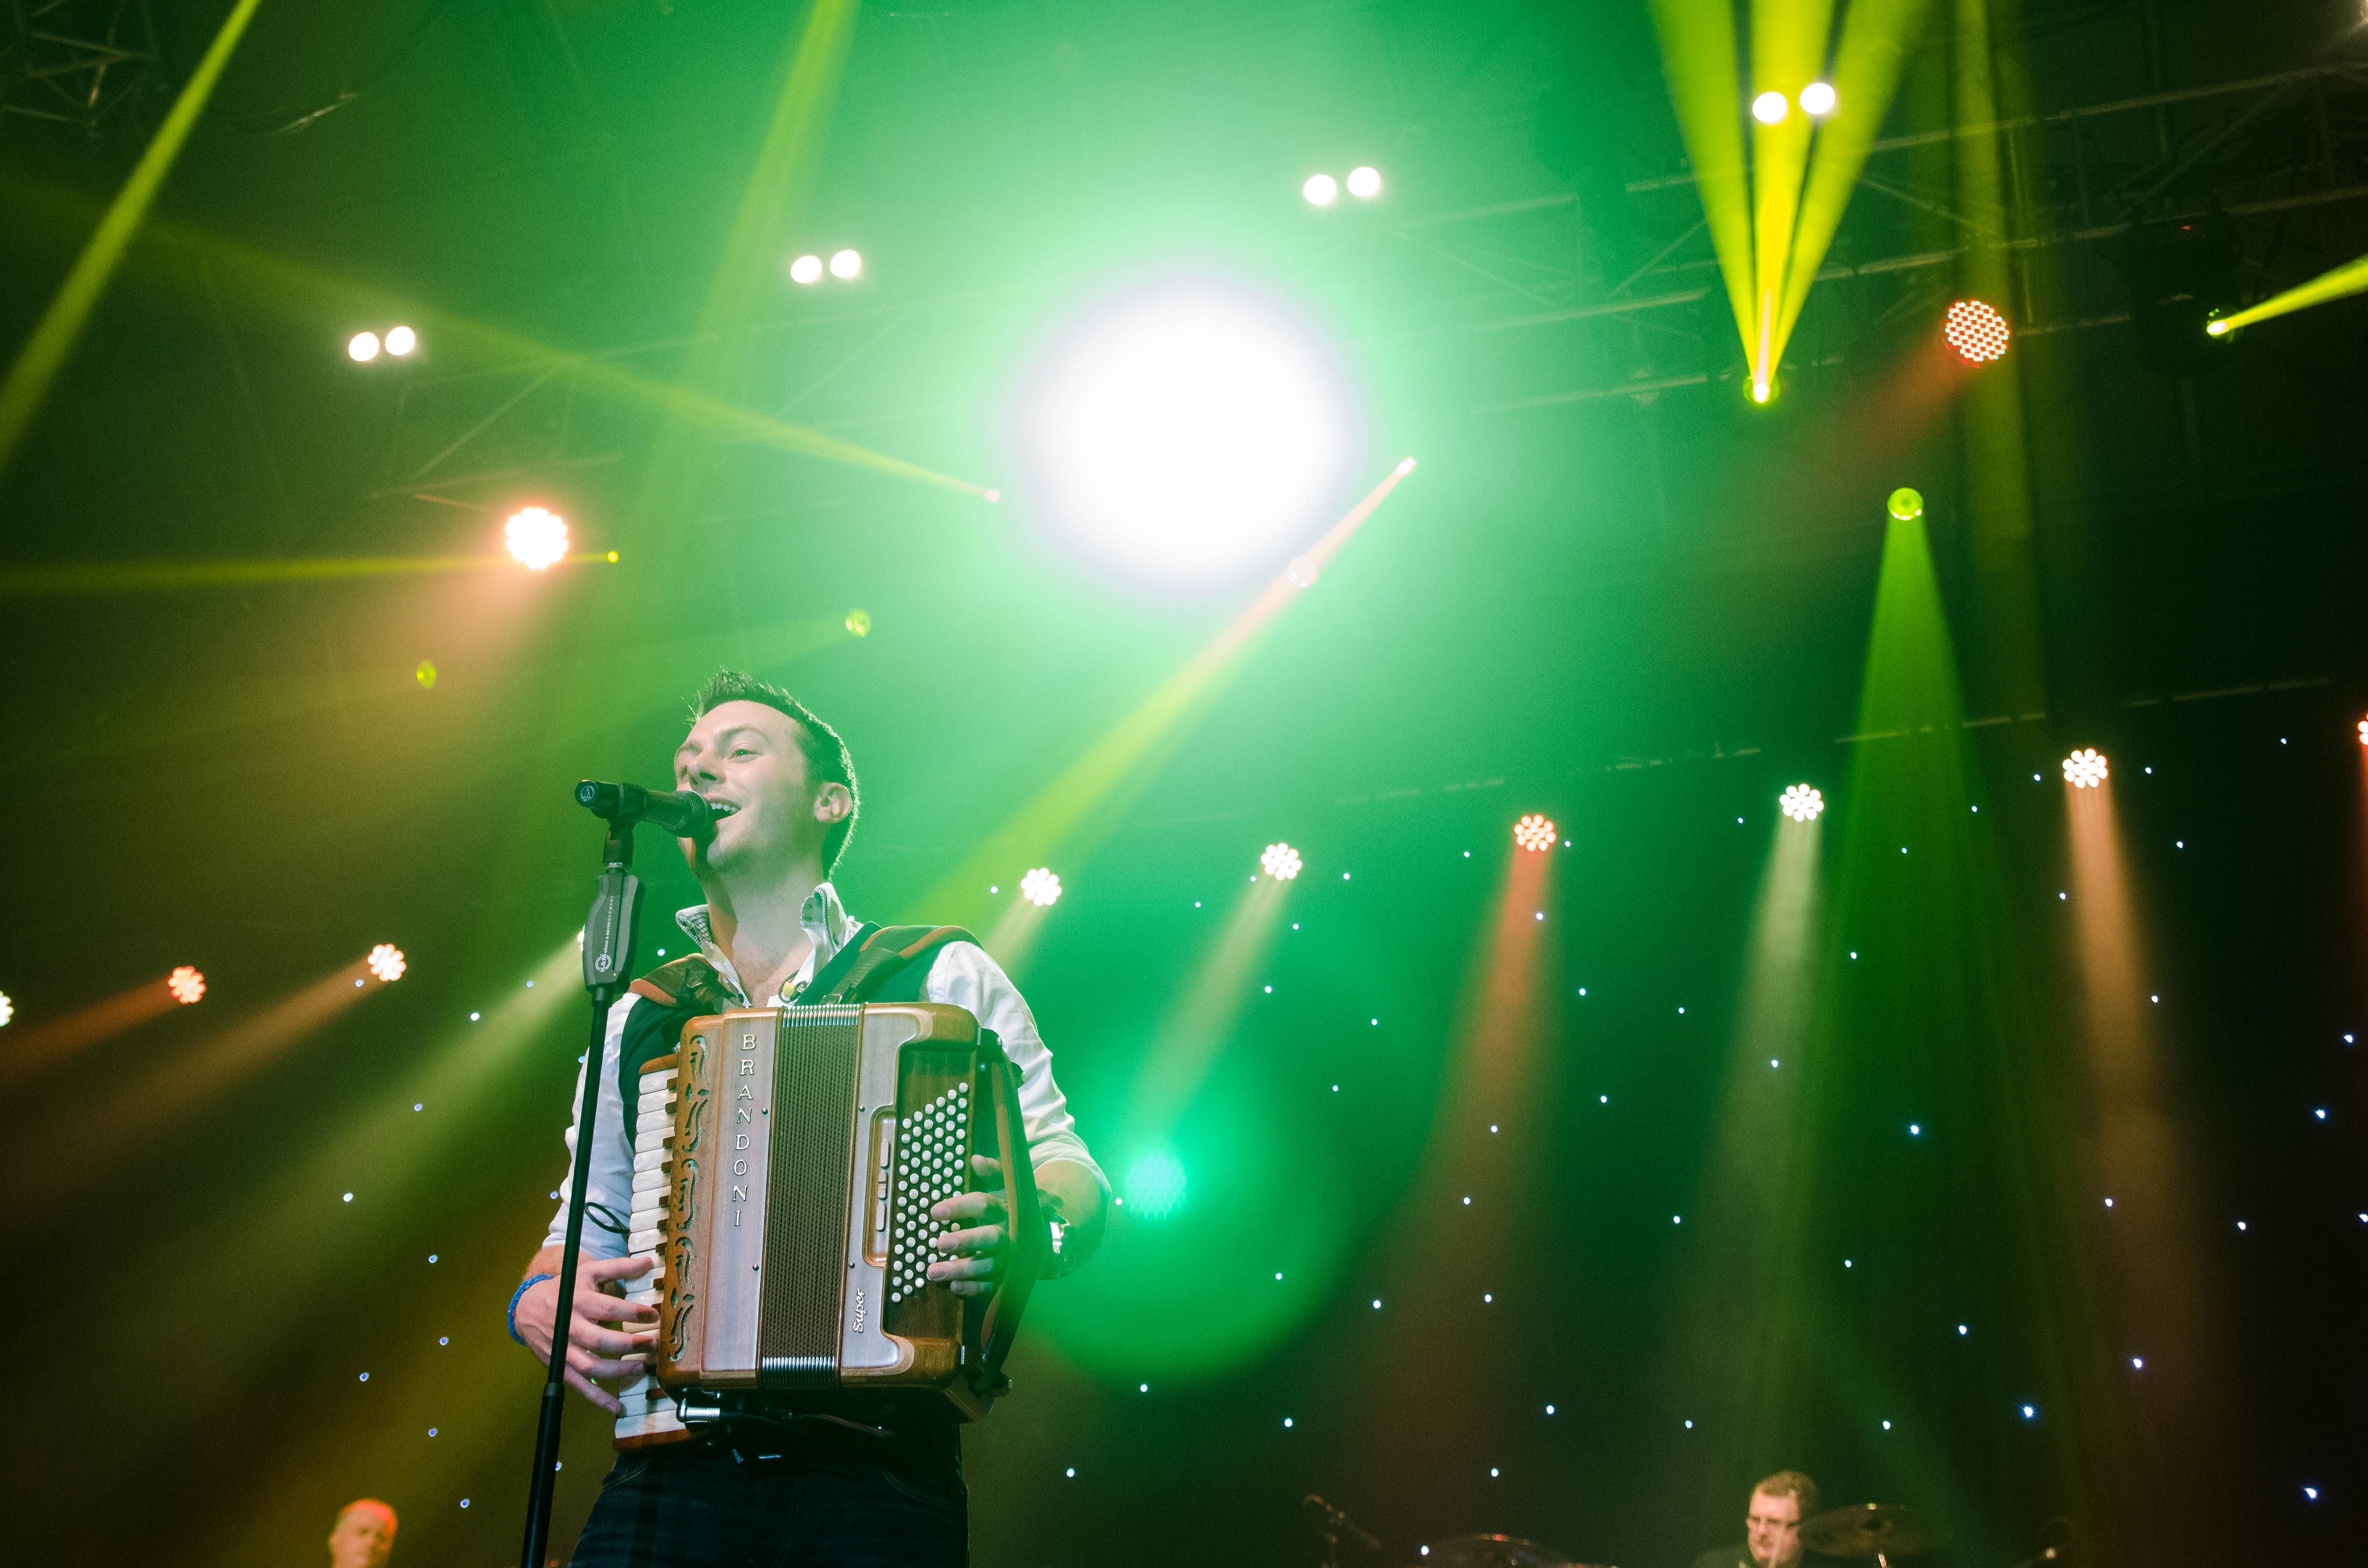 nathan-carter-at-the-marquee-cork-by-sean-smyth-15-6-14-46-of-55